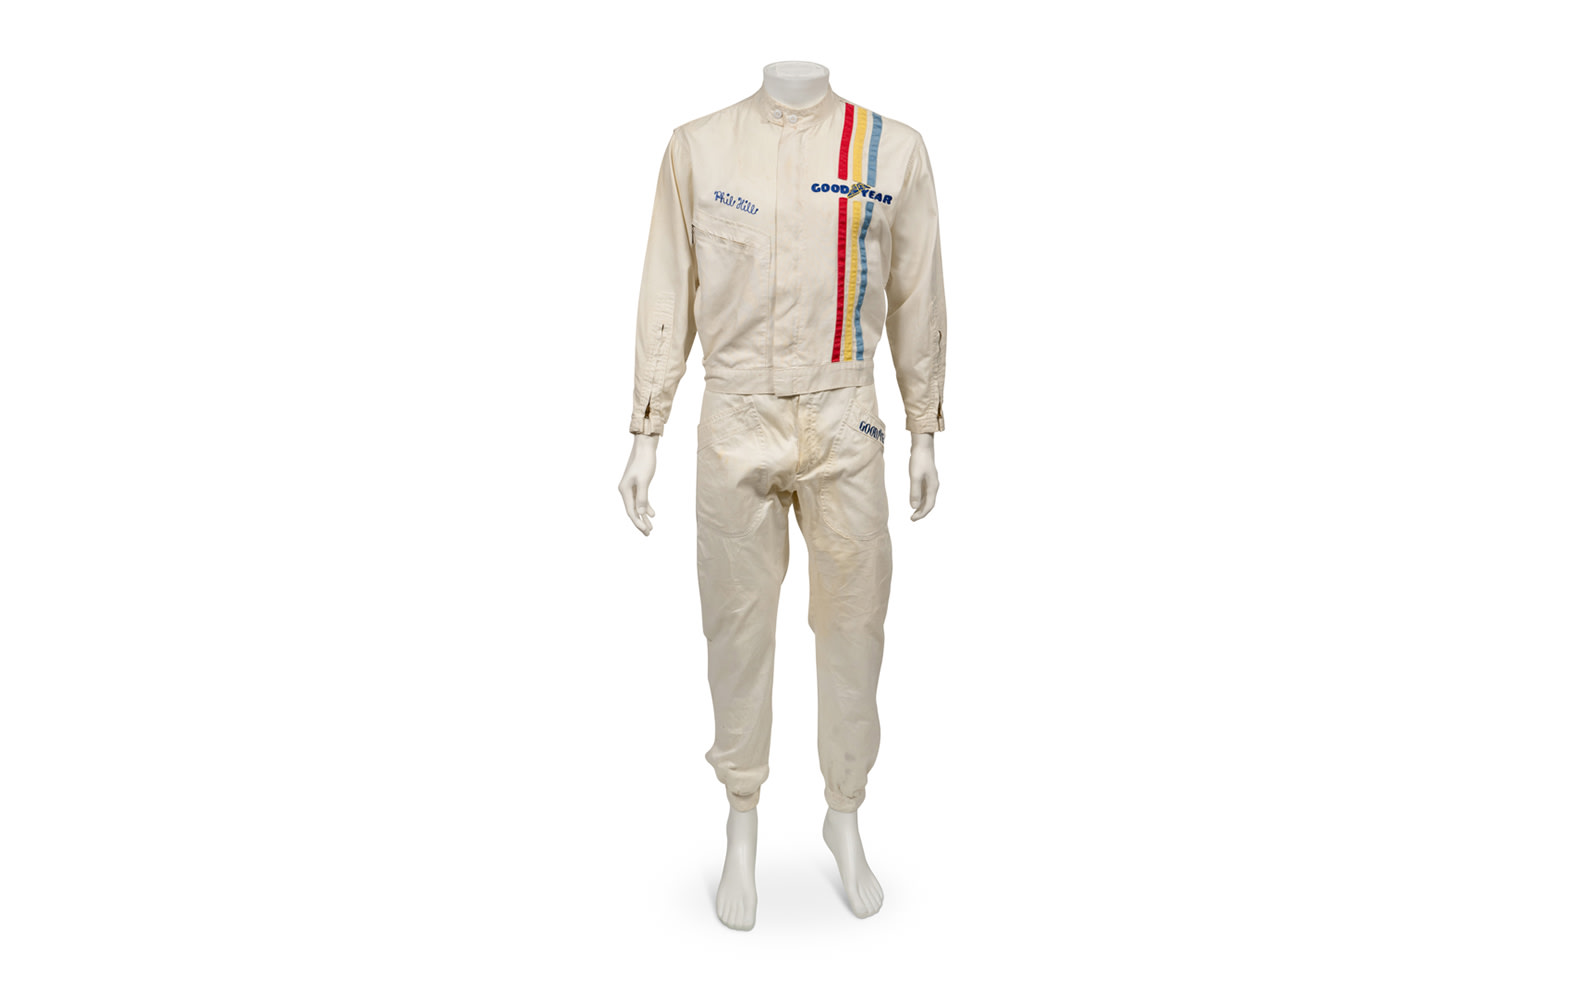 Shelby American/Goodyear Two-Piece Racing Suit, c.1965